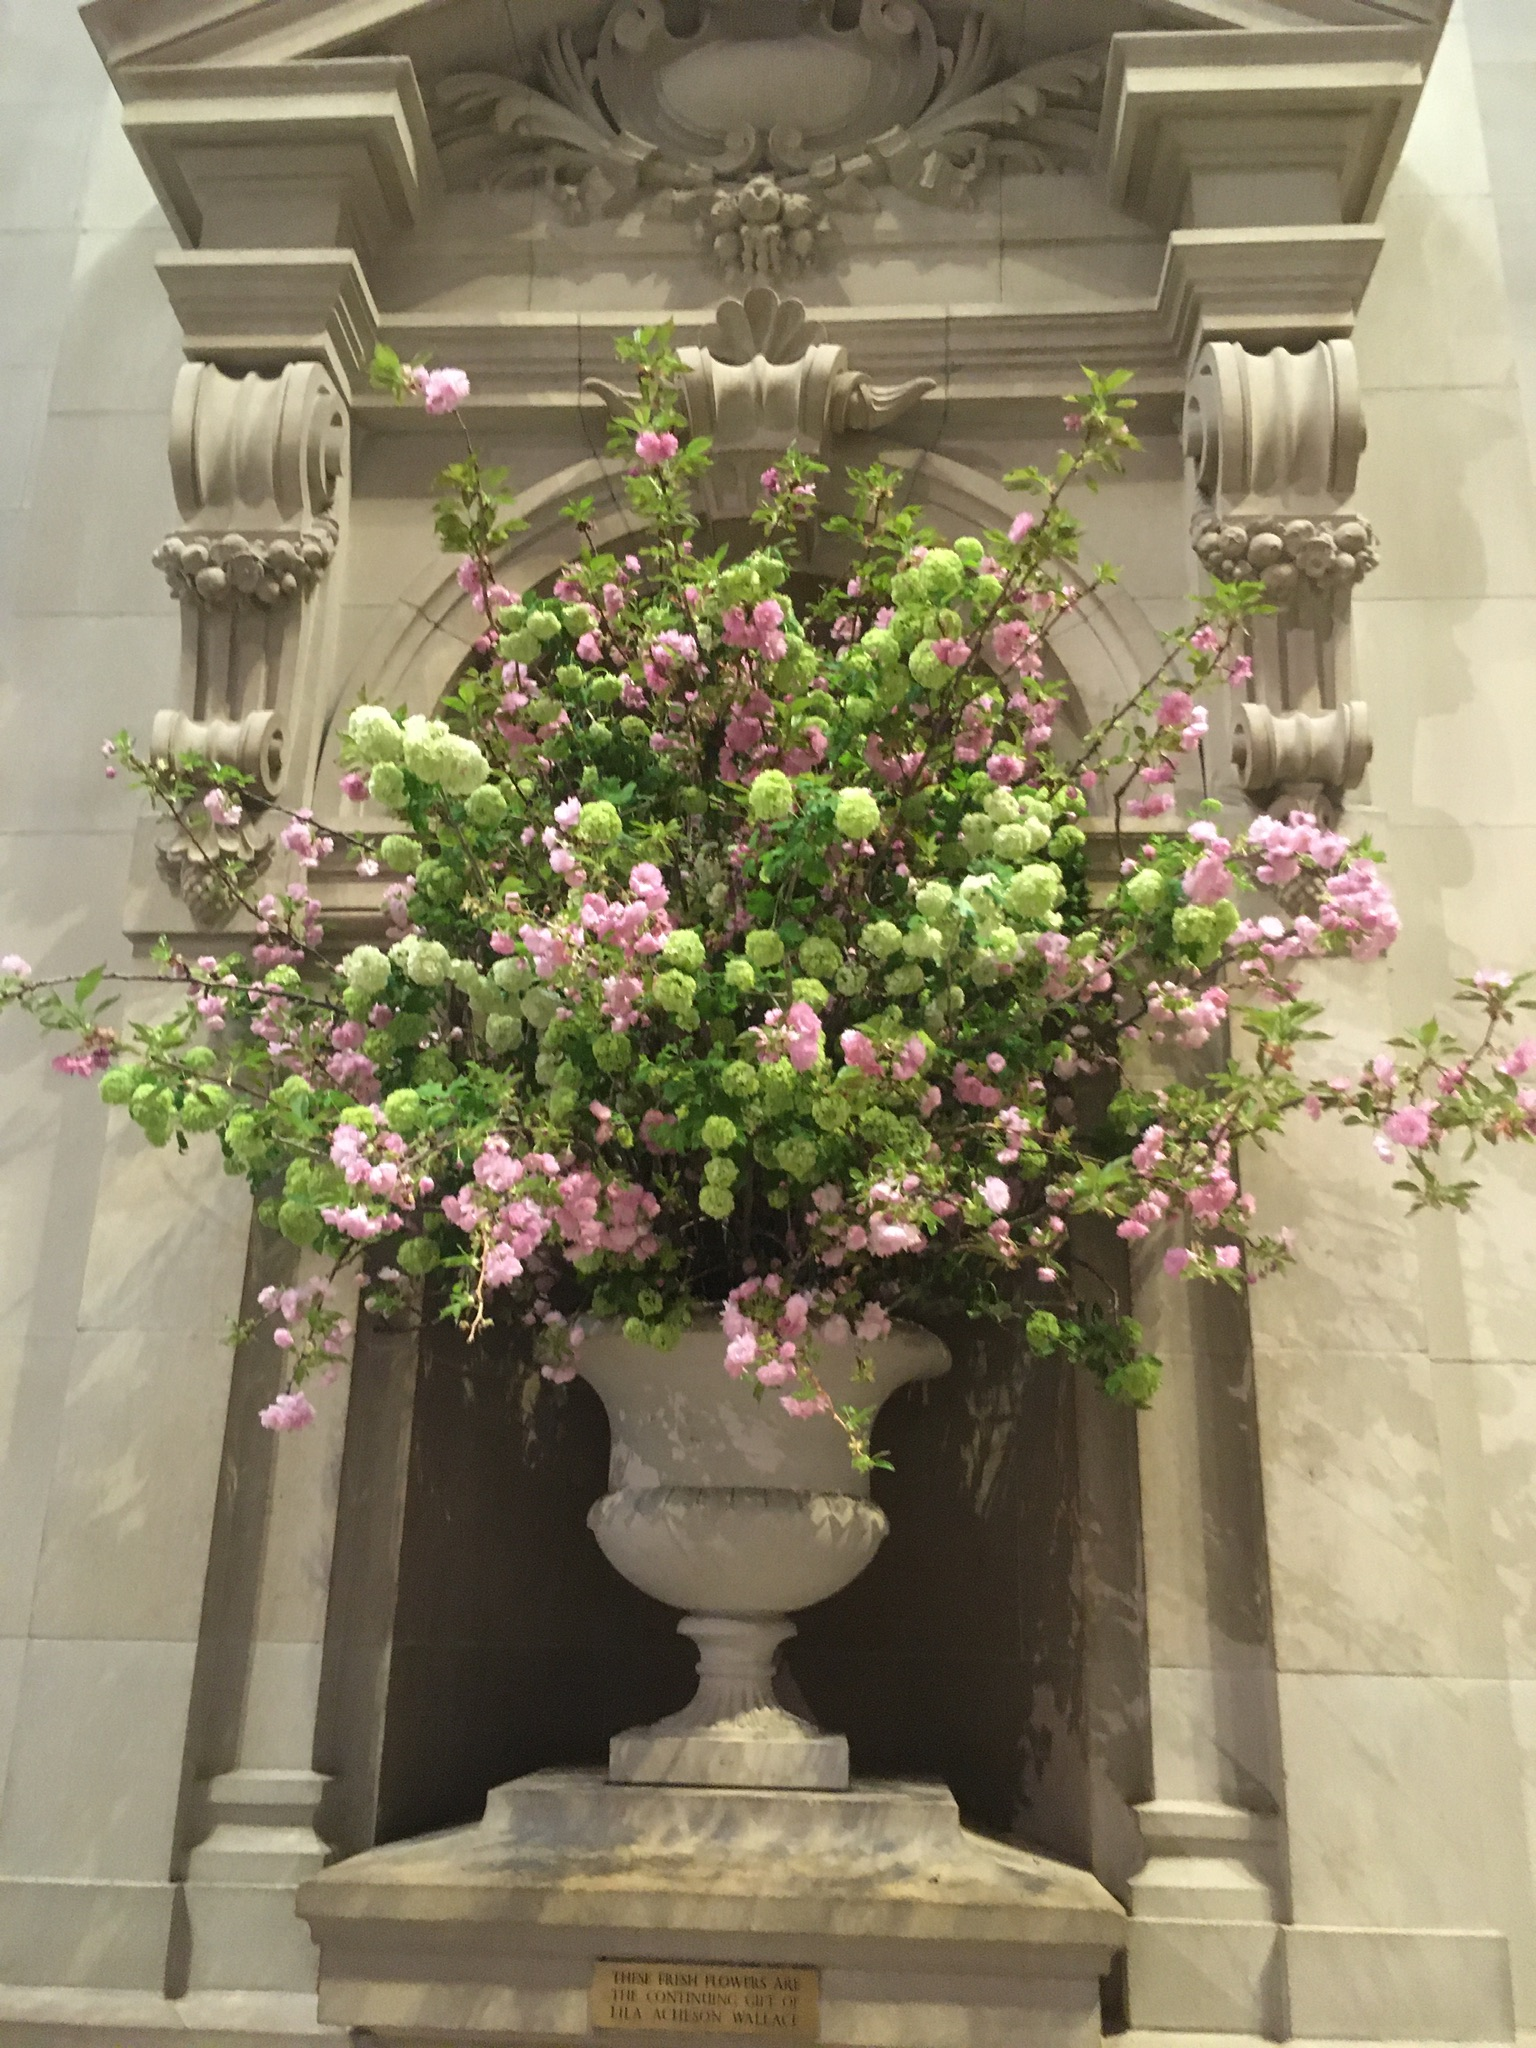 A floral installation in The Met's Great Hall.